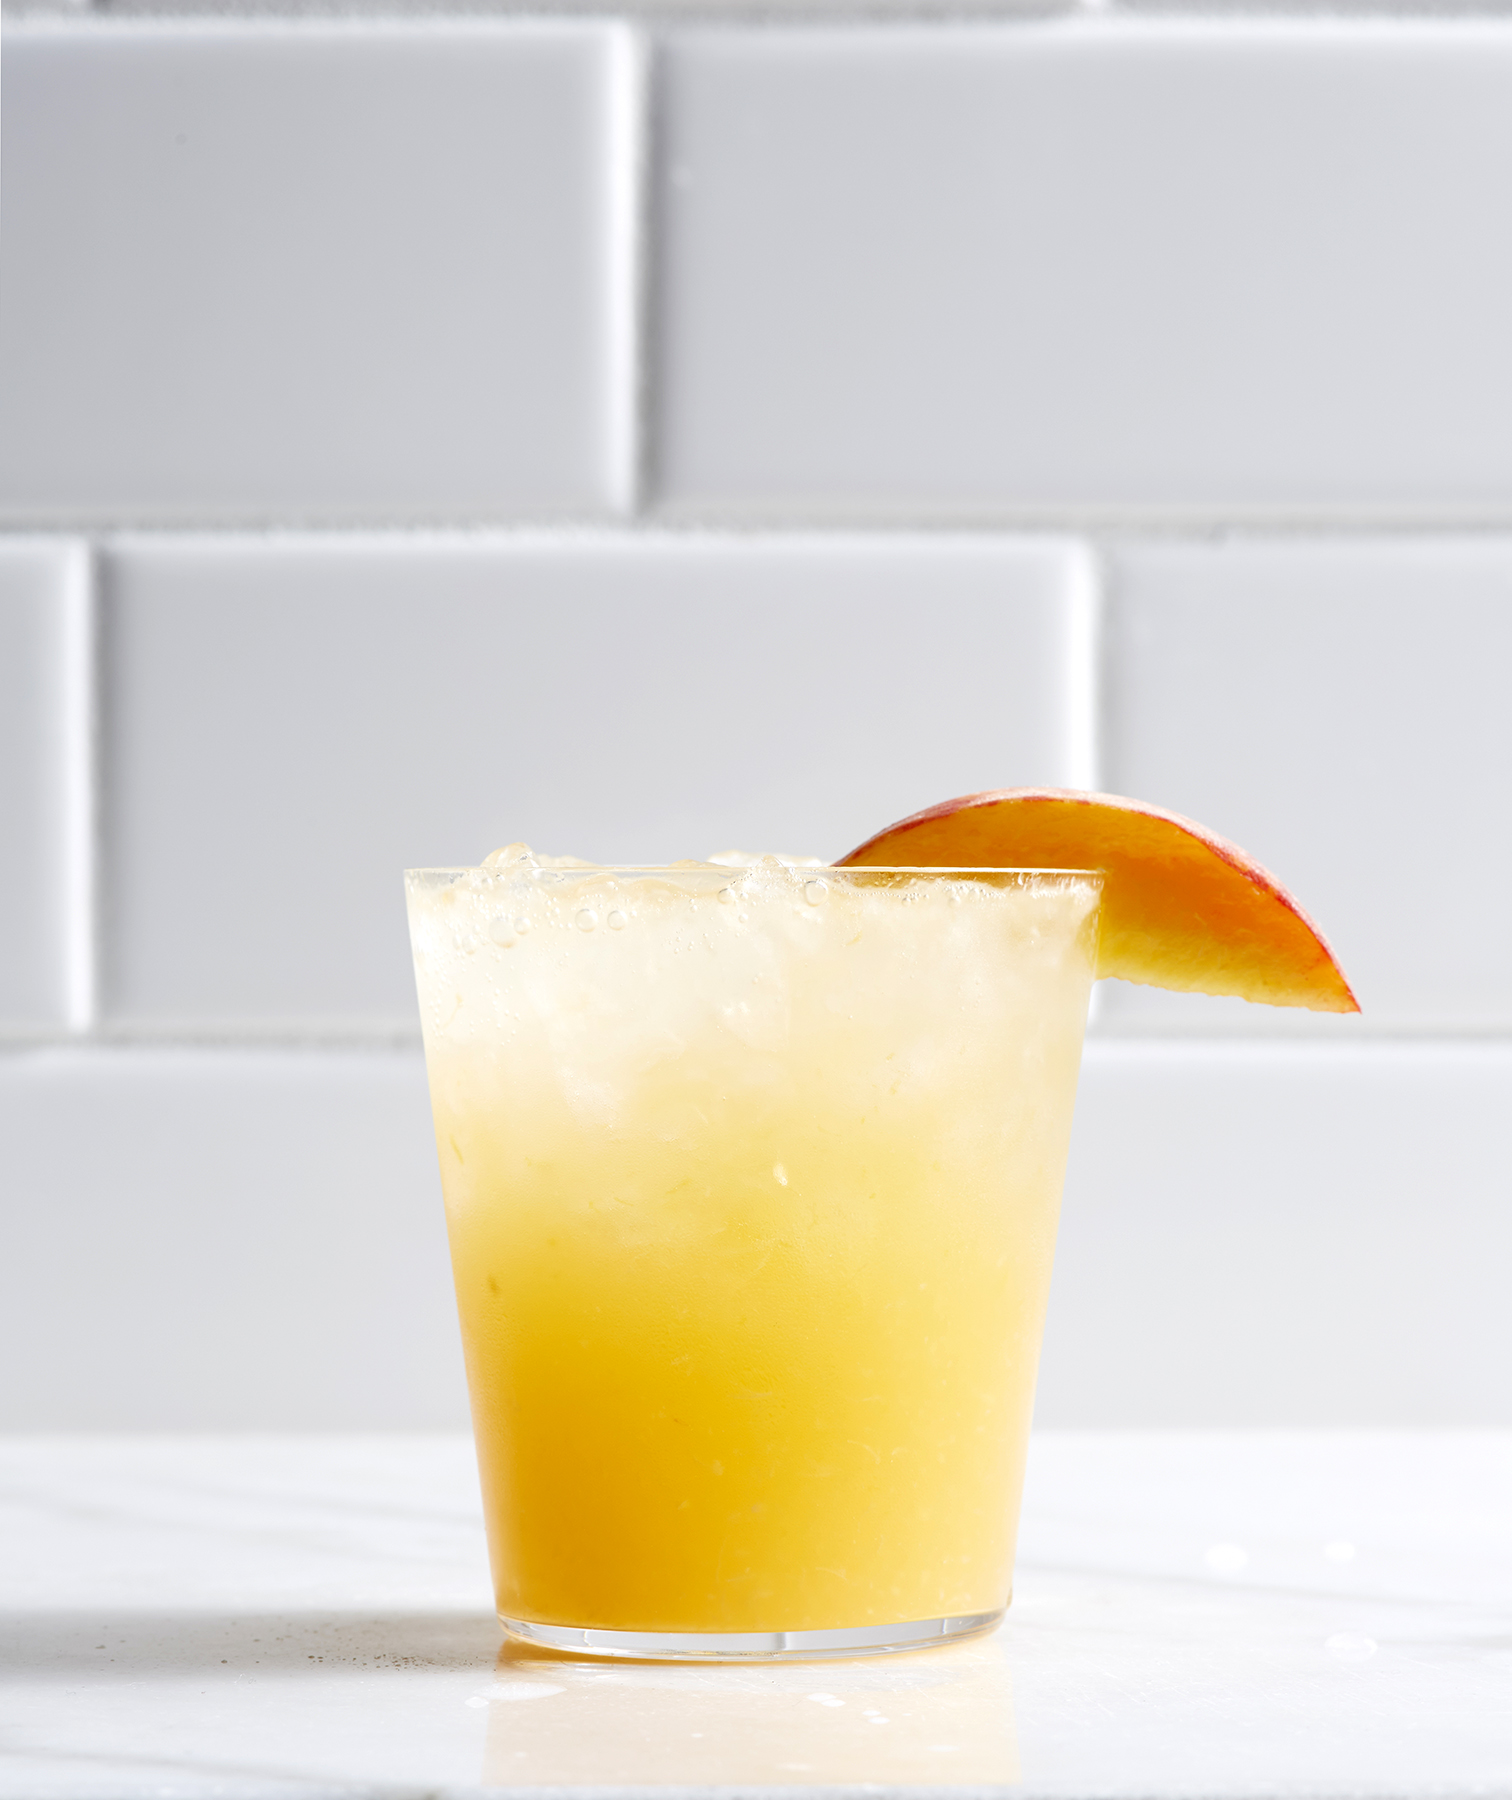 Peach and Ginger Shrub